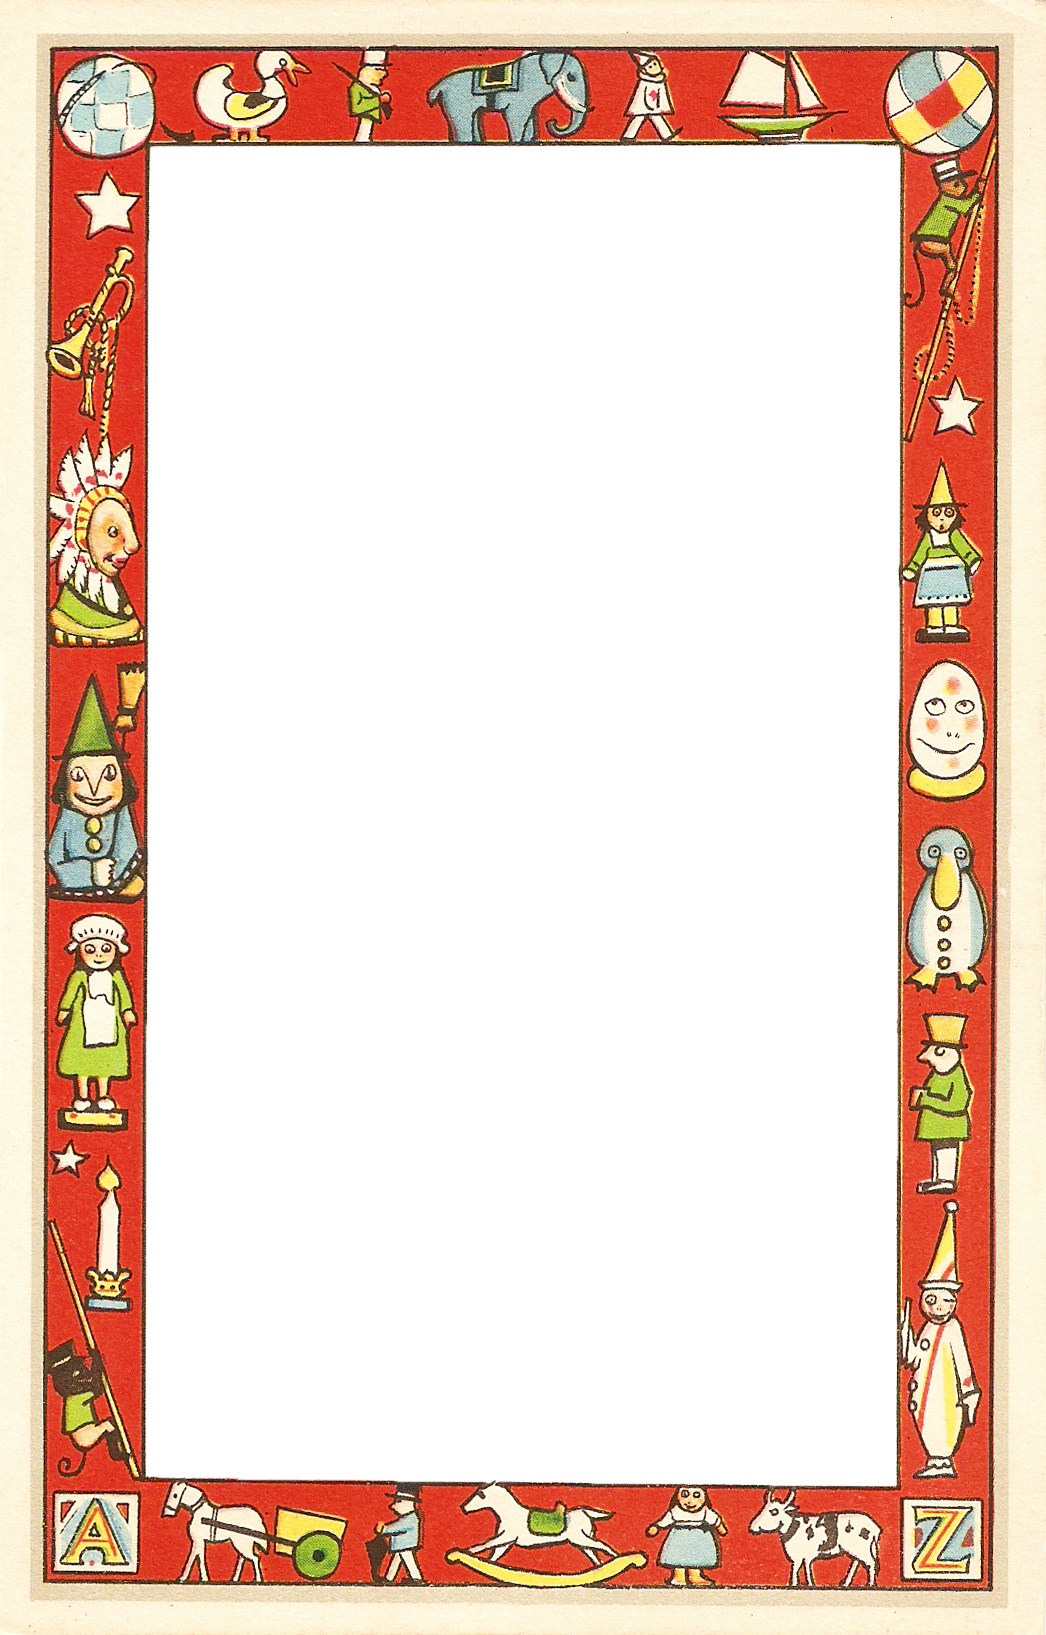 . PlusPng.com of the toy-filled border, and a png of the center section with Santa.  The card is undated and was published without a copyright notice but  appears to be PlusPng.com  - November PNG Border